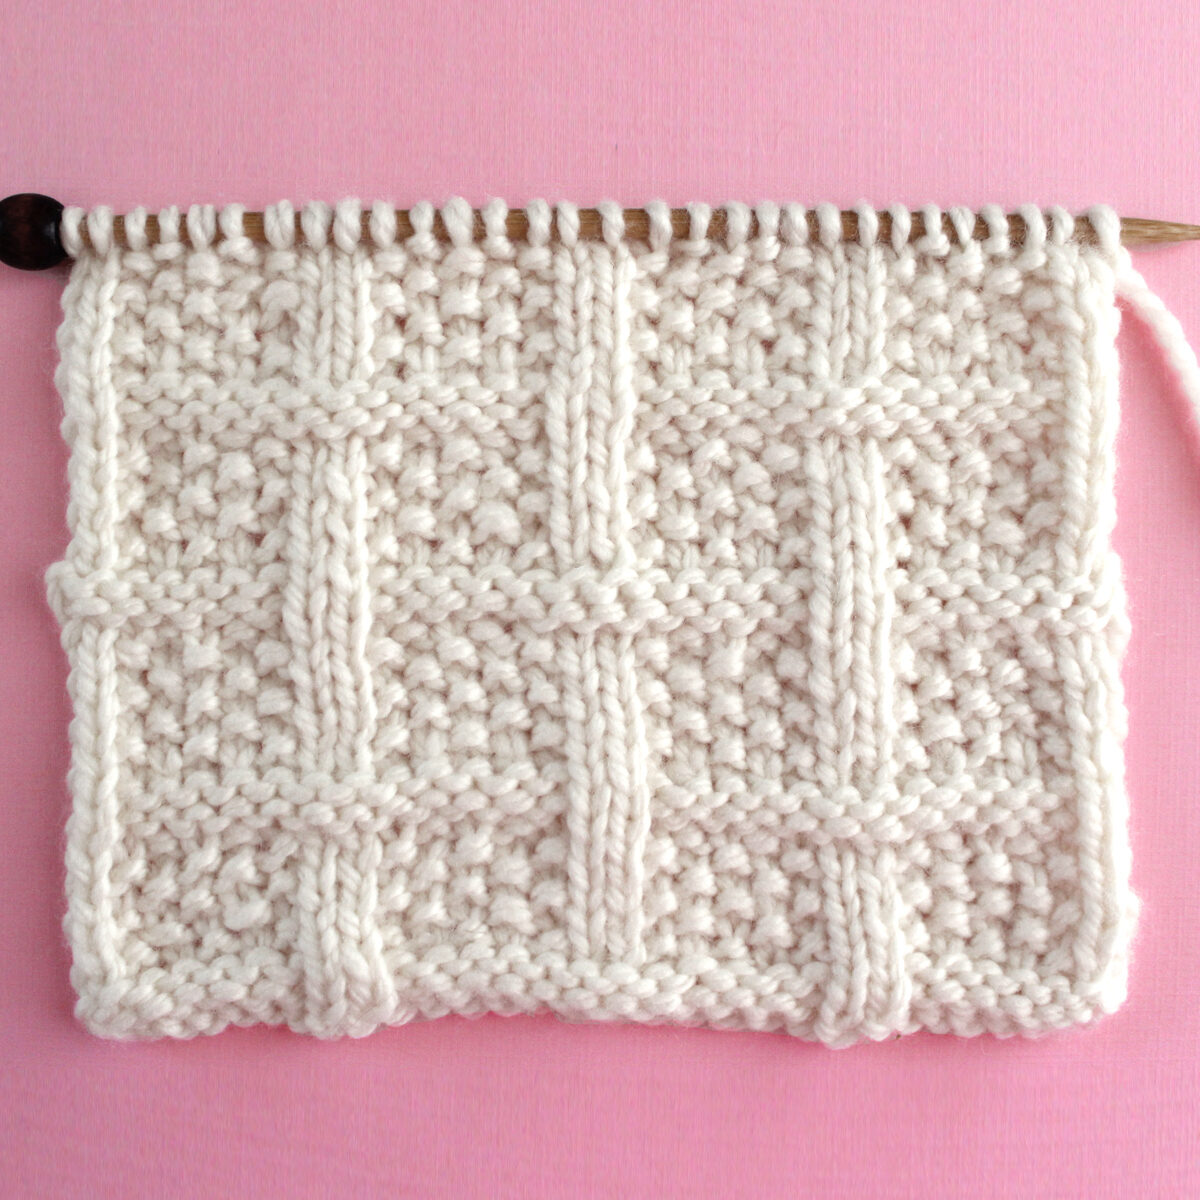 Lattice Seed Knit Stitch Pattern texture in white color yarn on knitting needle atop a pink background.